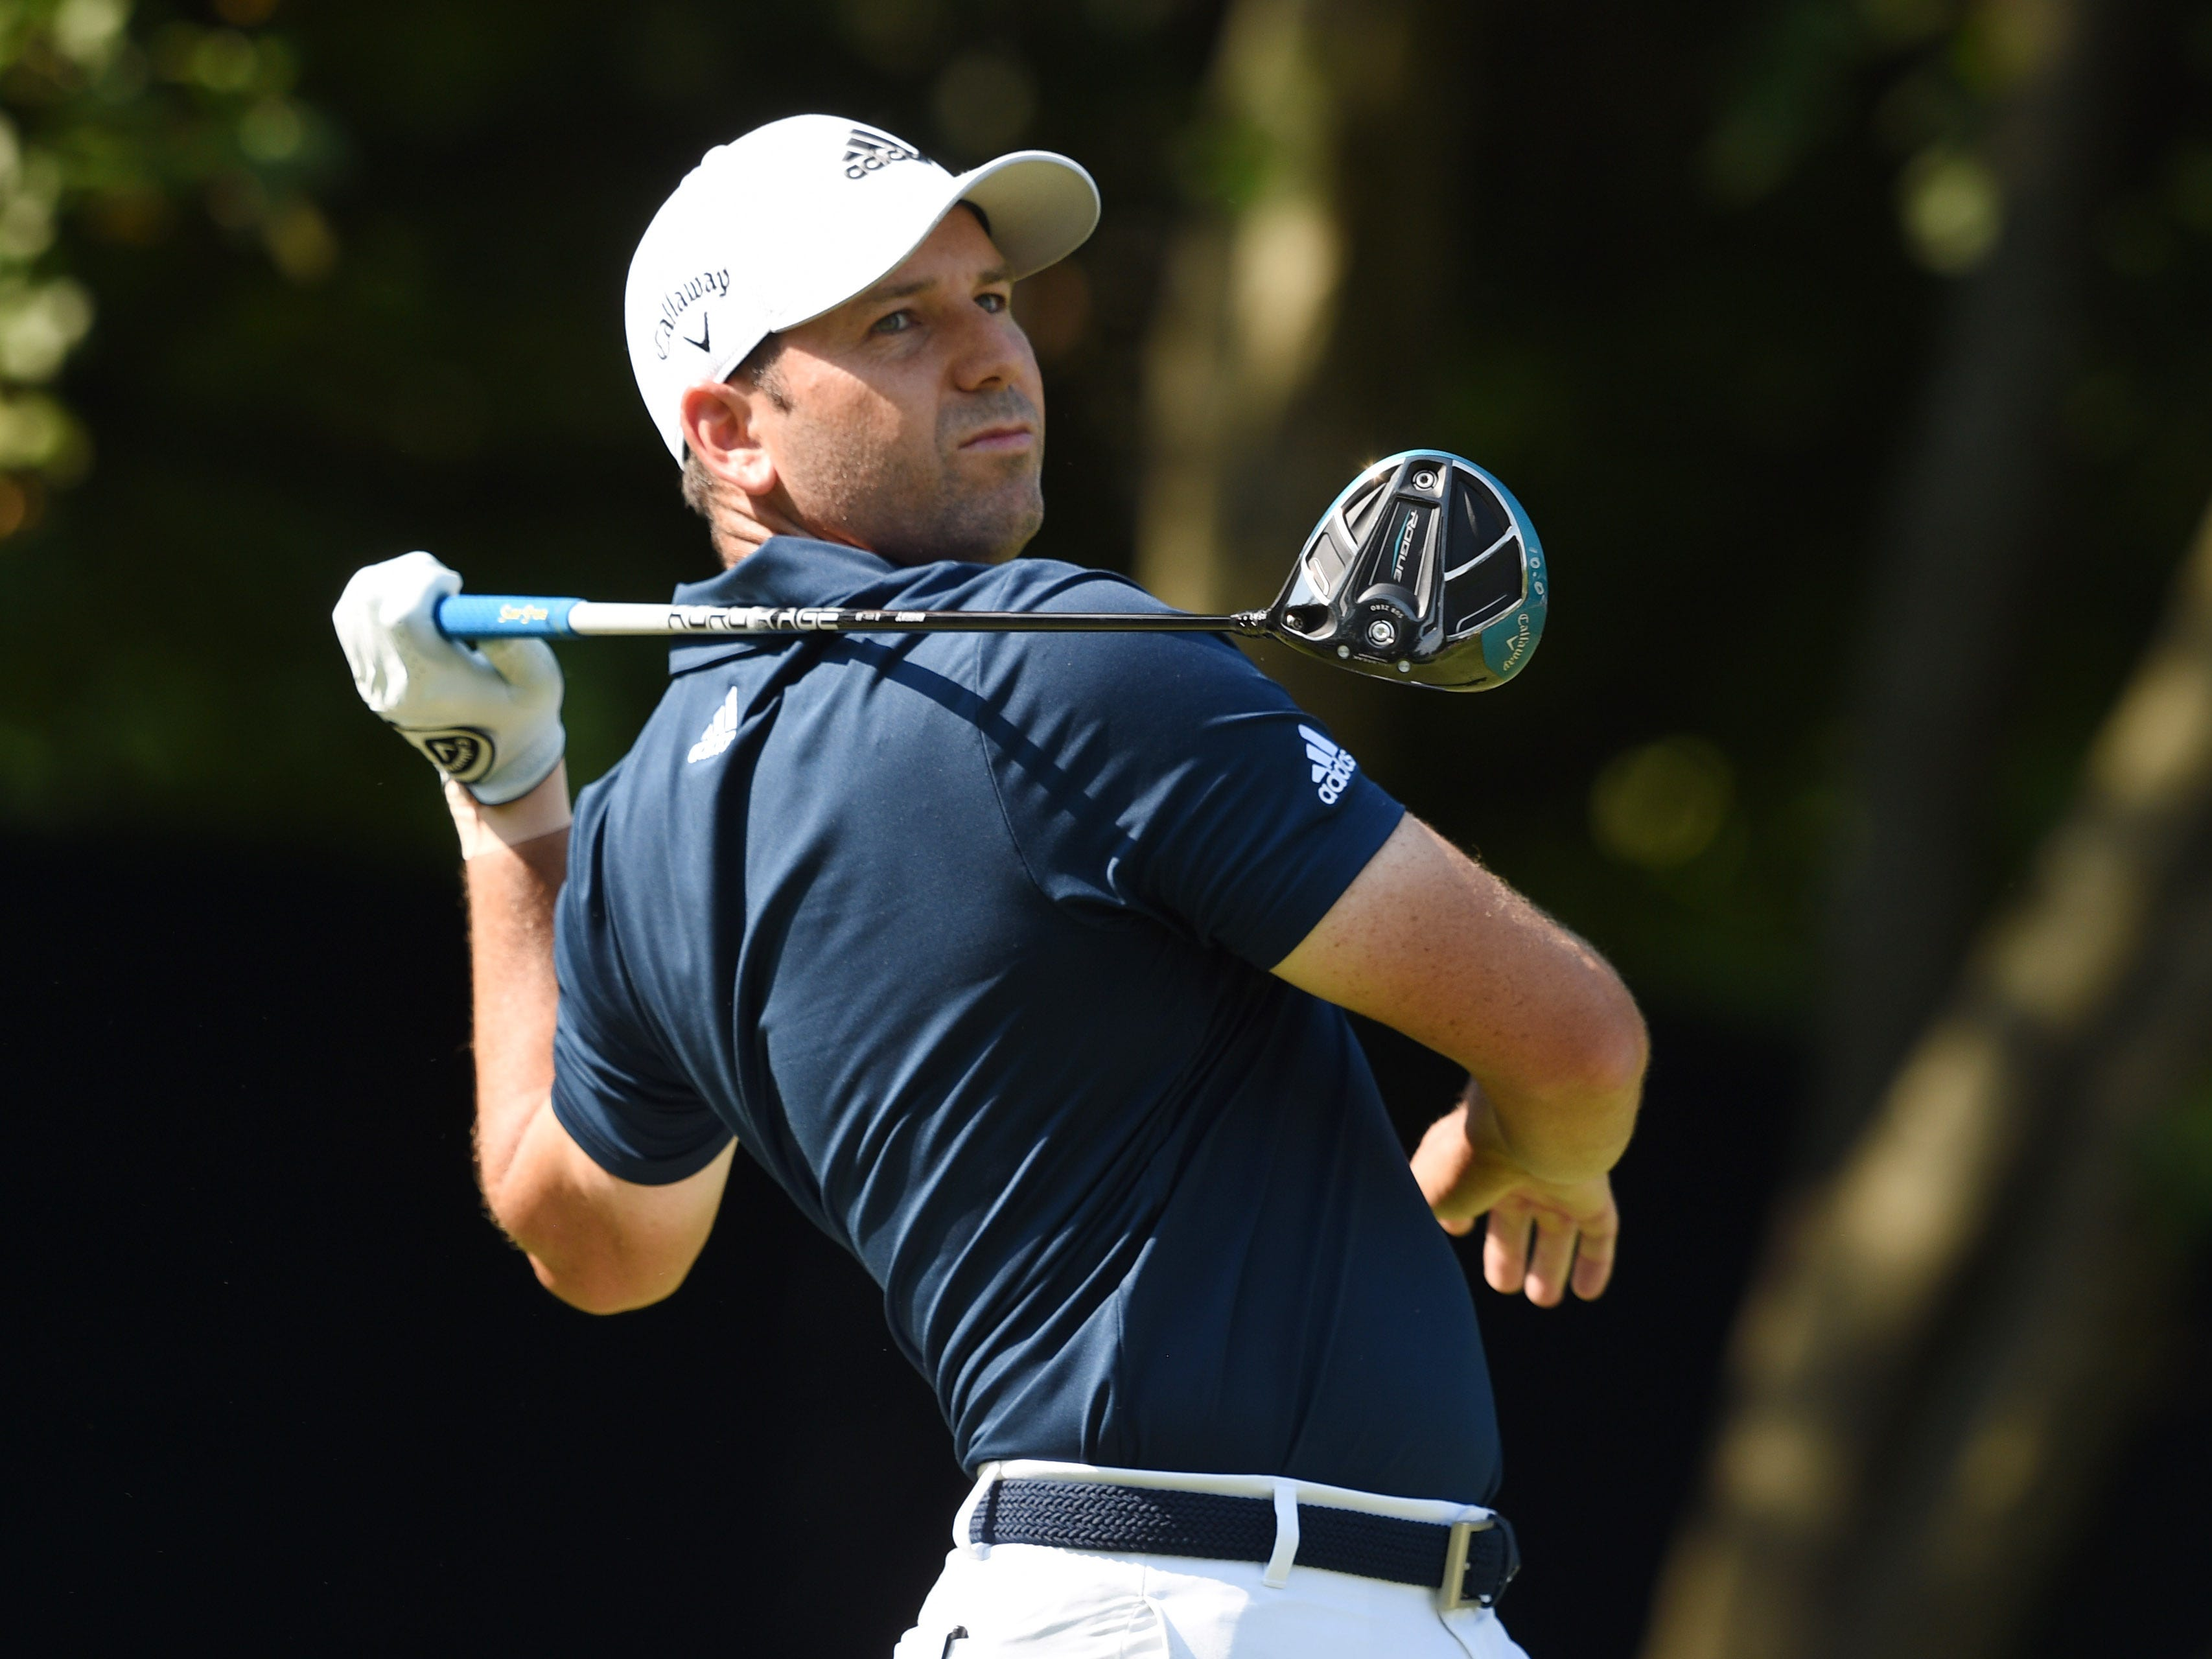 Sergio Garcia reacts after his tee shot on the 18th hole during the second round.